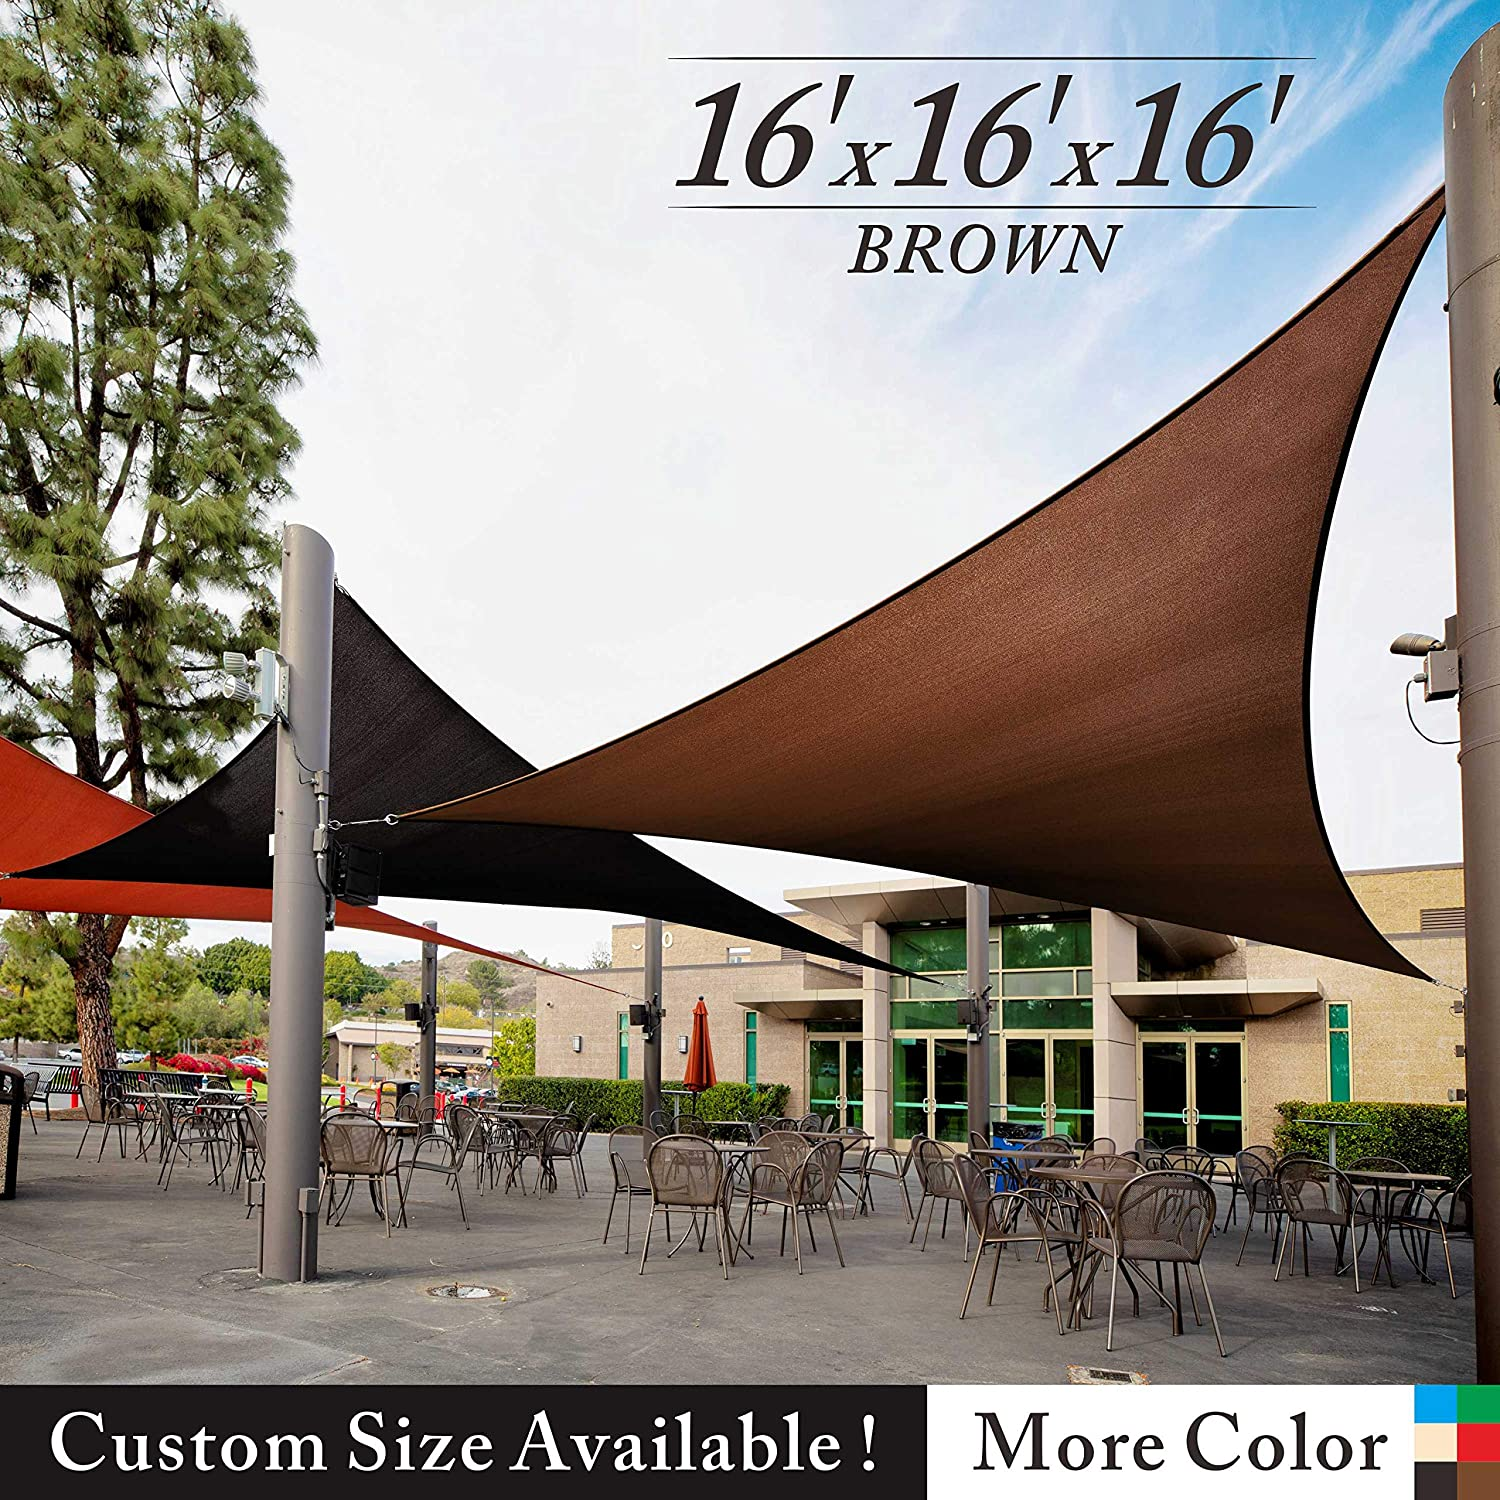 Royal Shade 16 x 16 x 16 Brown Triangle Sun Shade Sail Canopy Outdoor Patio Fabric Shelter Cloth Screen Awning – 95 UV Protection, 200 GSM, Heavy Duty, 5 Years Warranty, We Make Custom Size